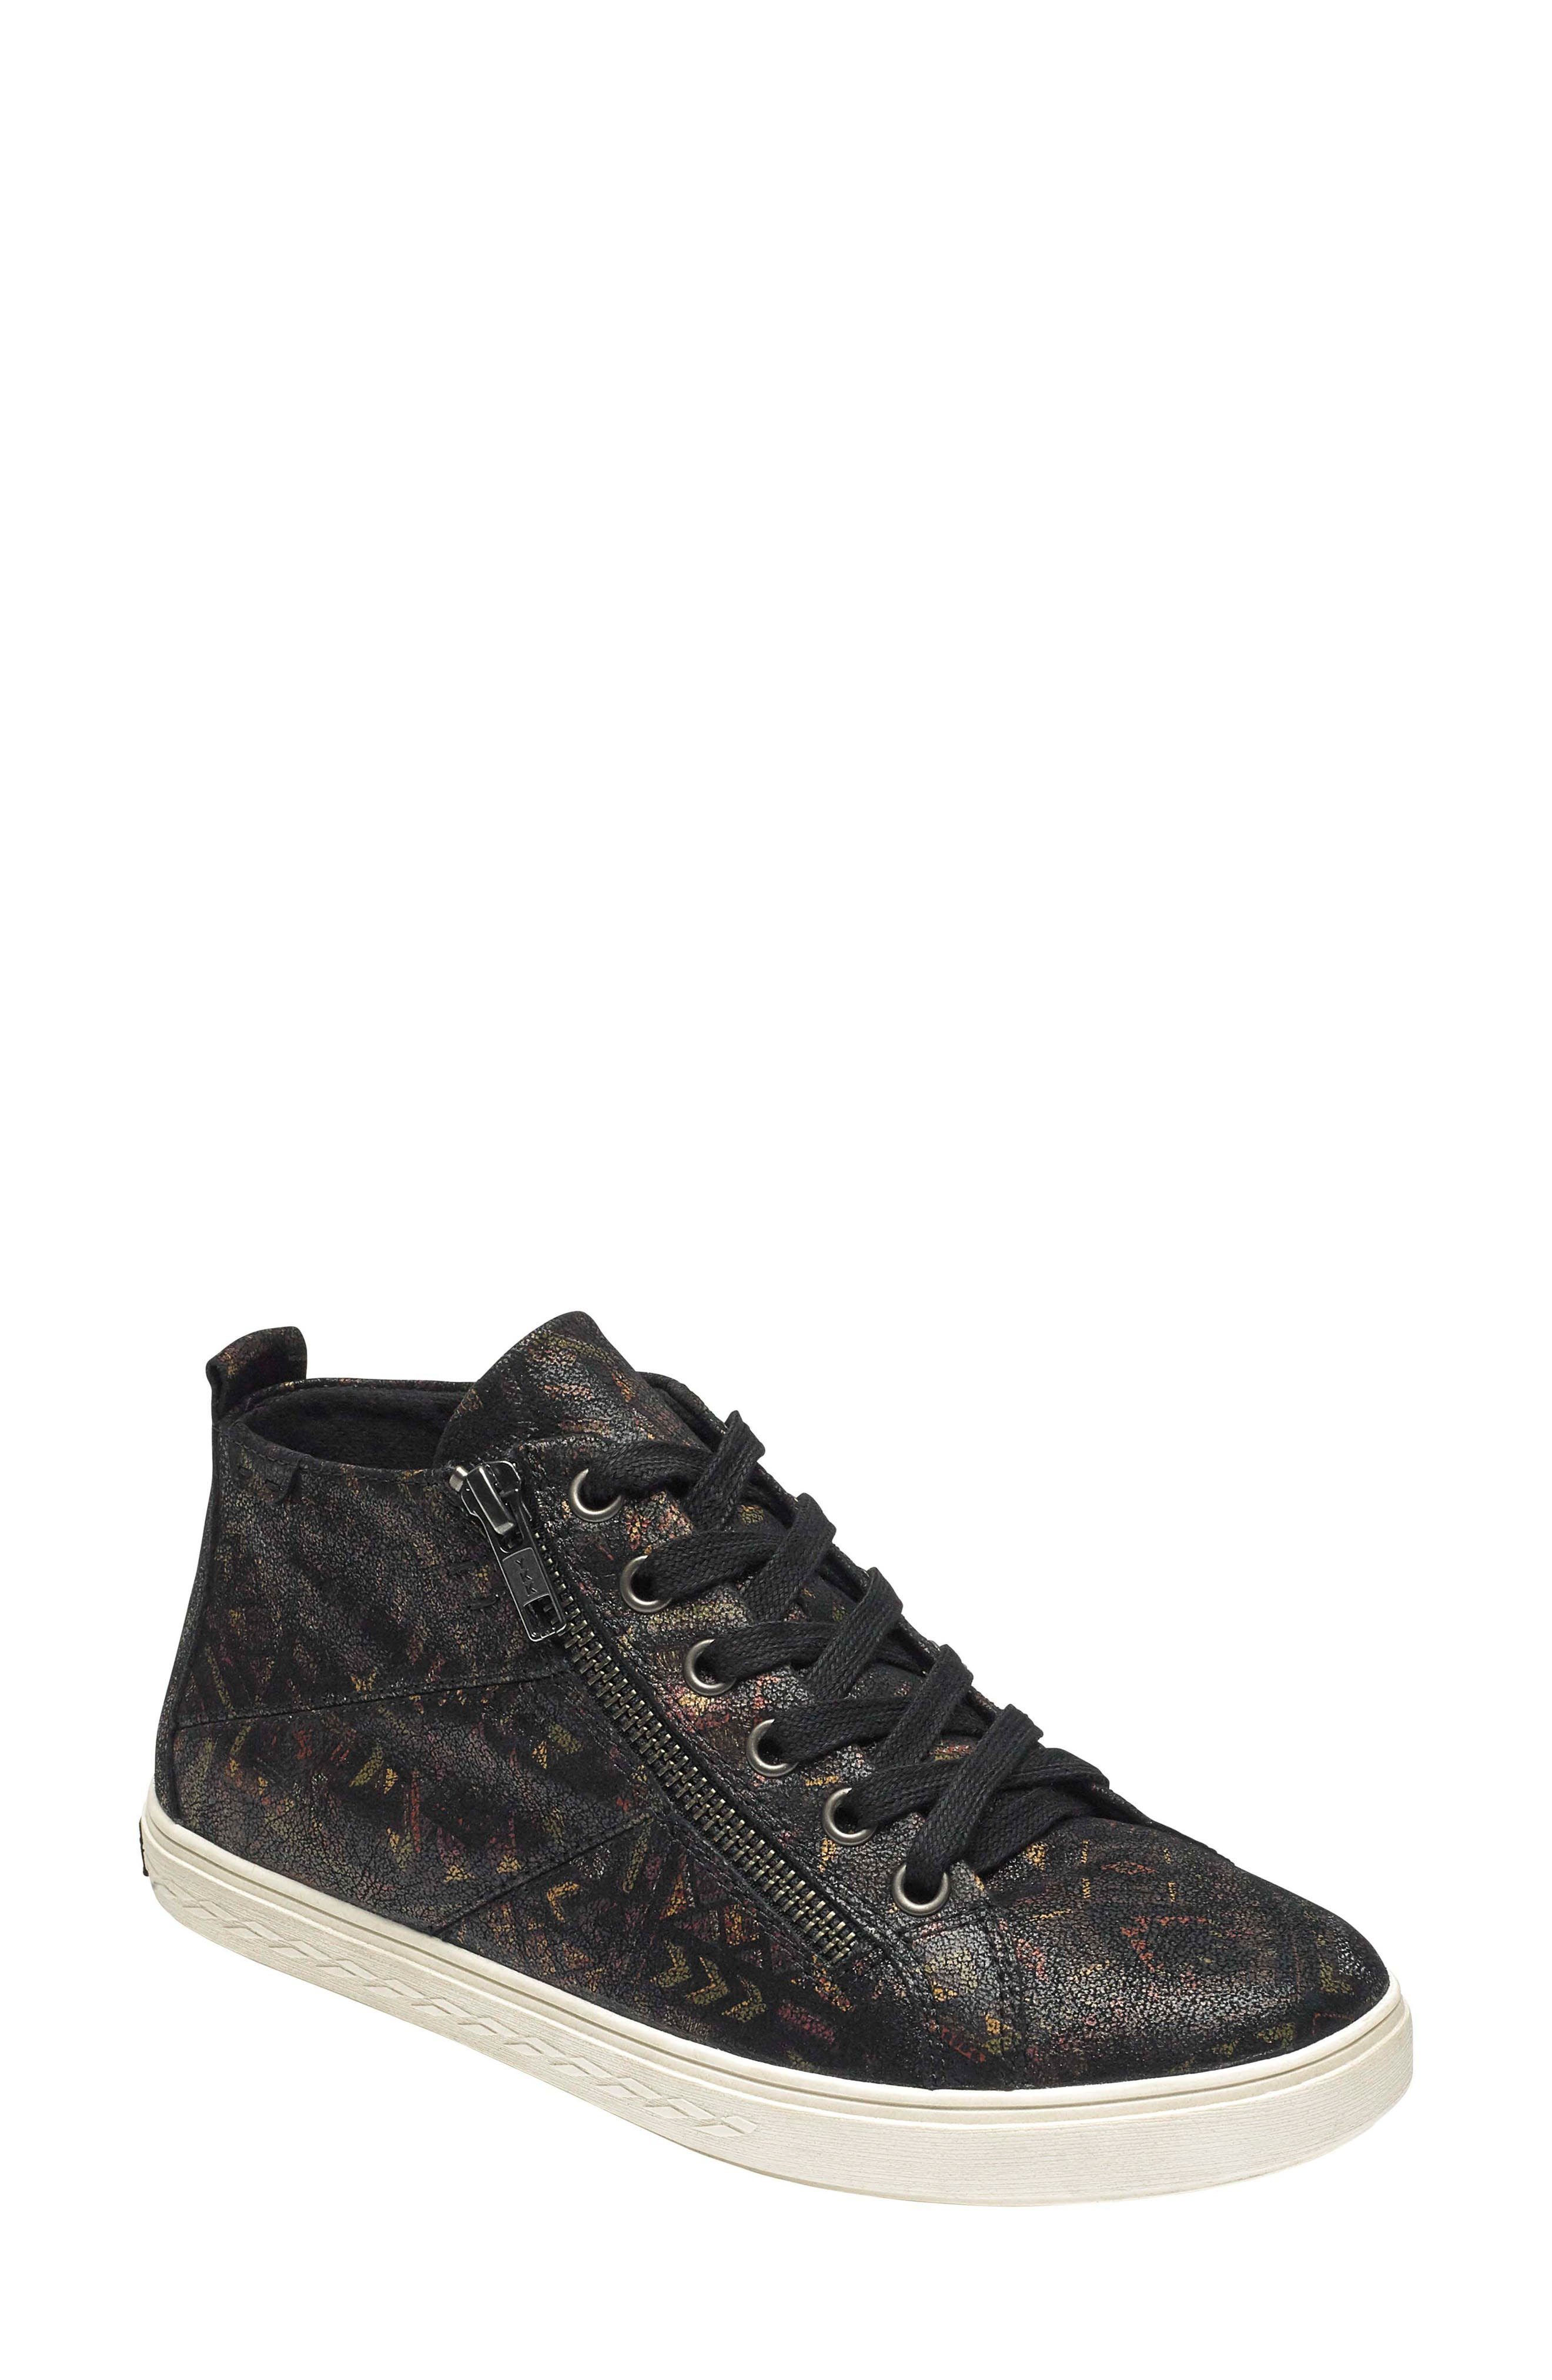 Willa High Top Sneaker,                         Main,                         color, NOVELTY PRINT LEATHER